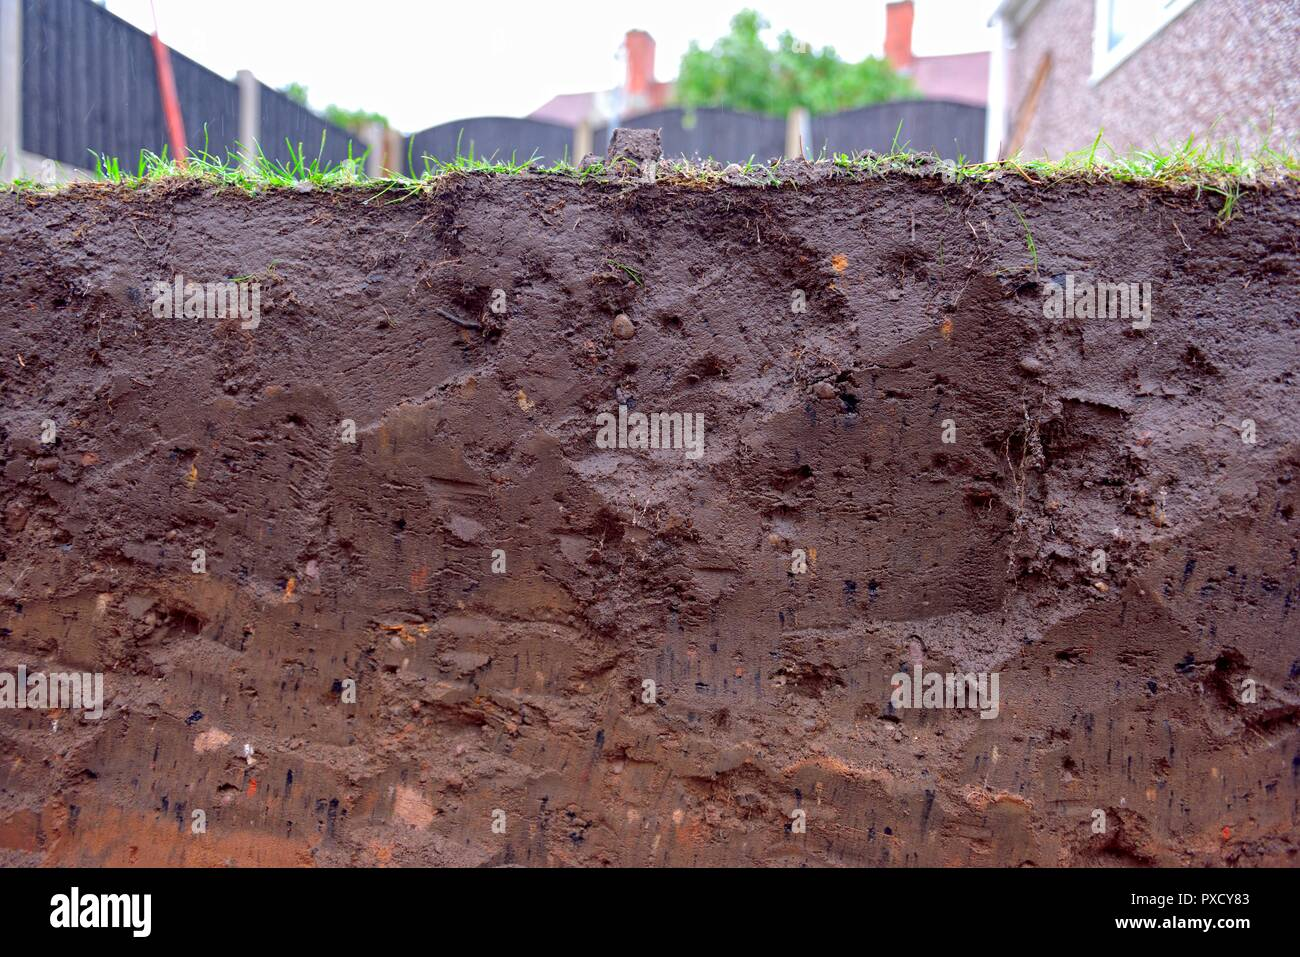 Earth Layers Stock Photos Amp Earth Layers Stock Images